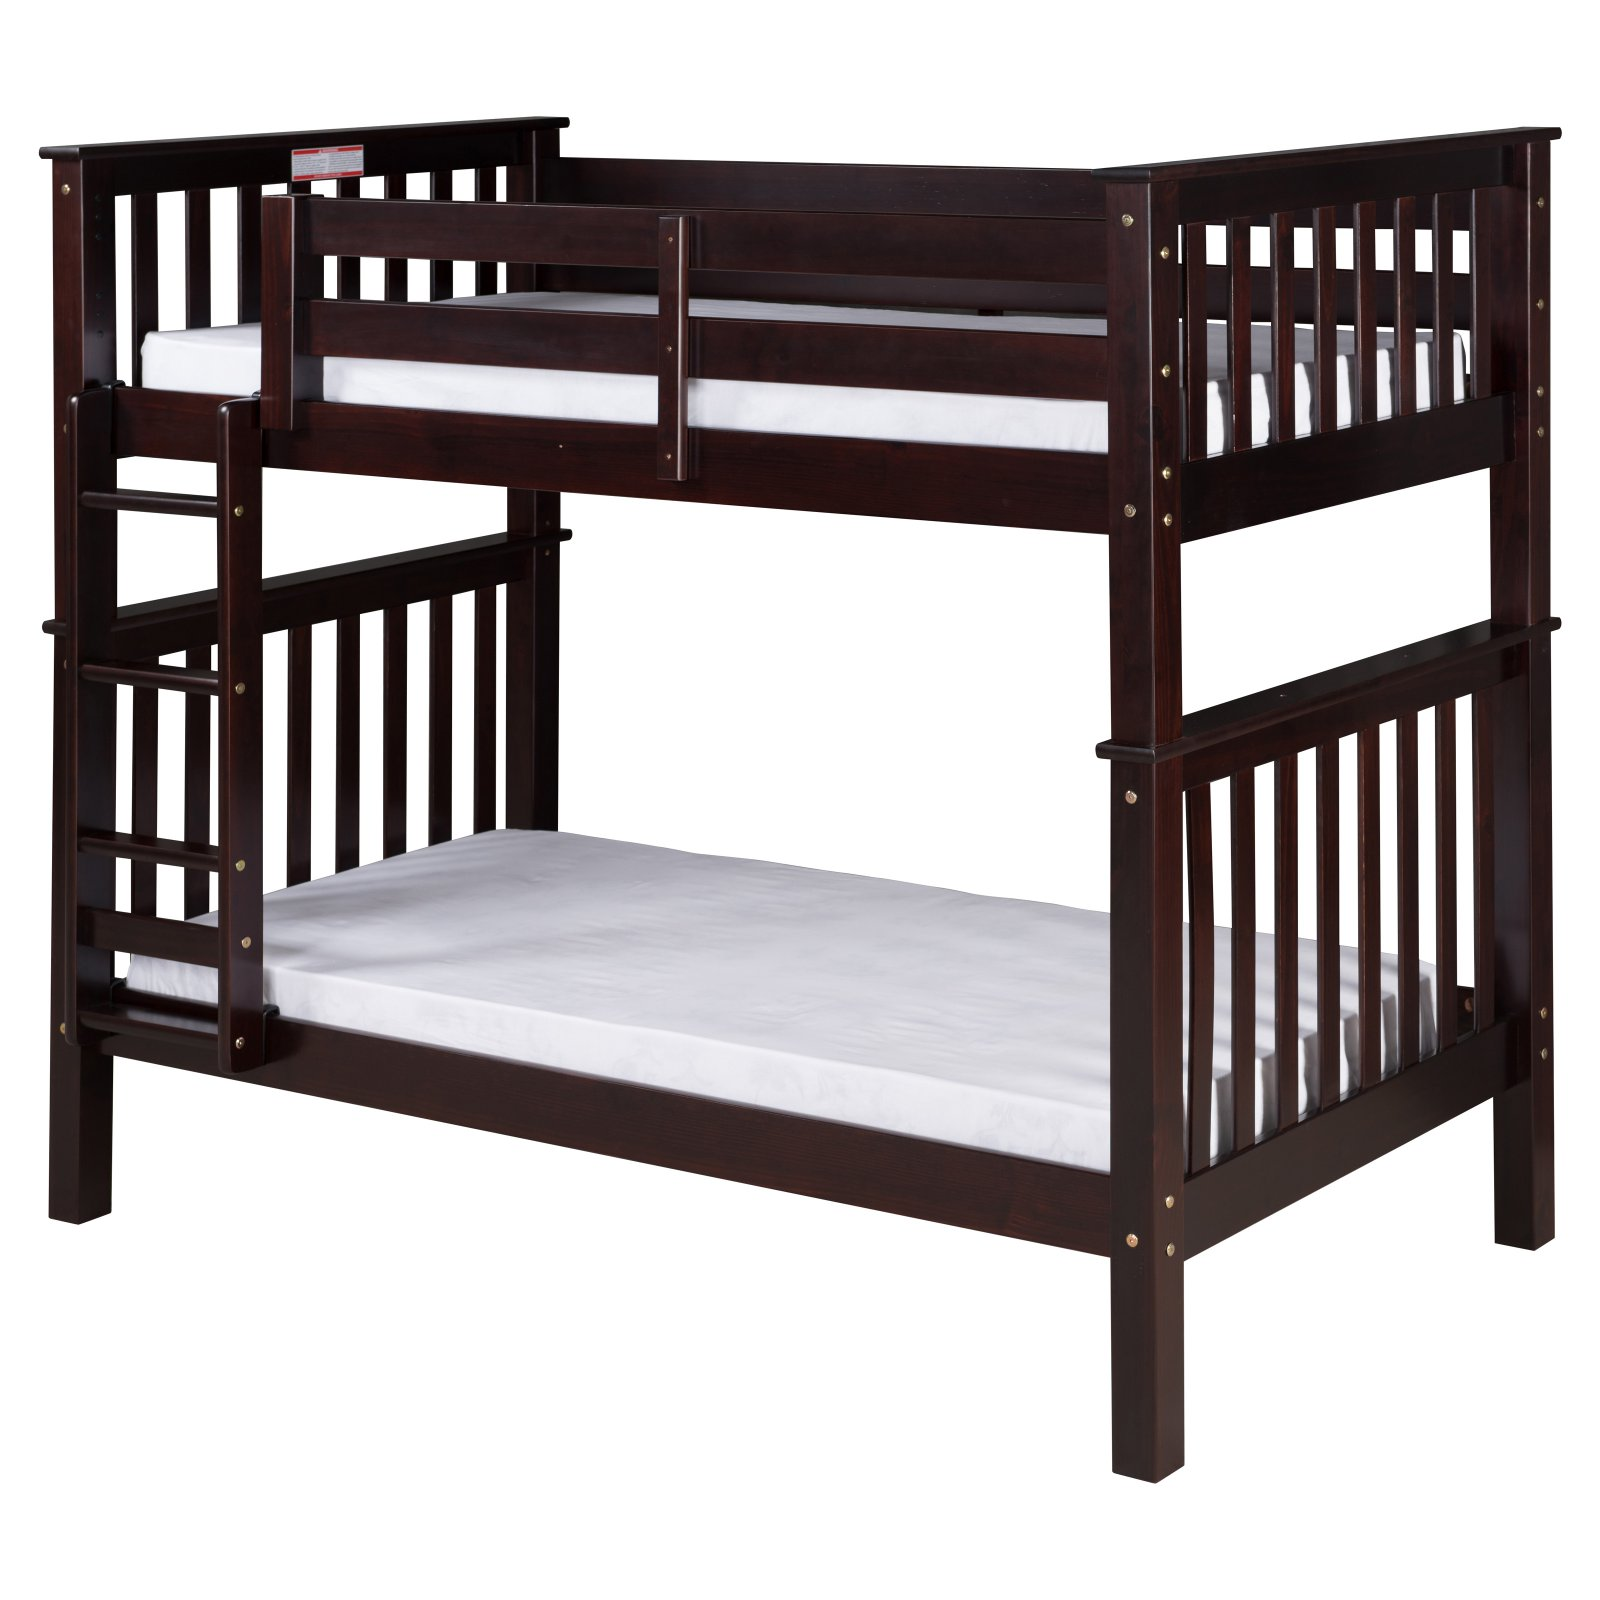 Santa Fe Mission Tall Bunk Bed Twin over Twin - Attached Ladder - Multiple Finishes